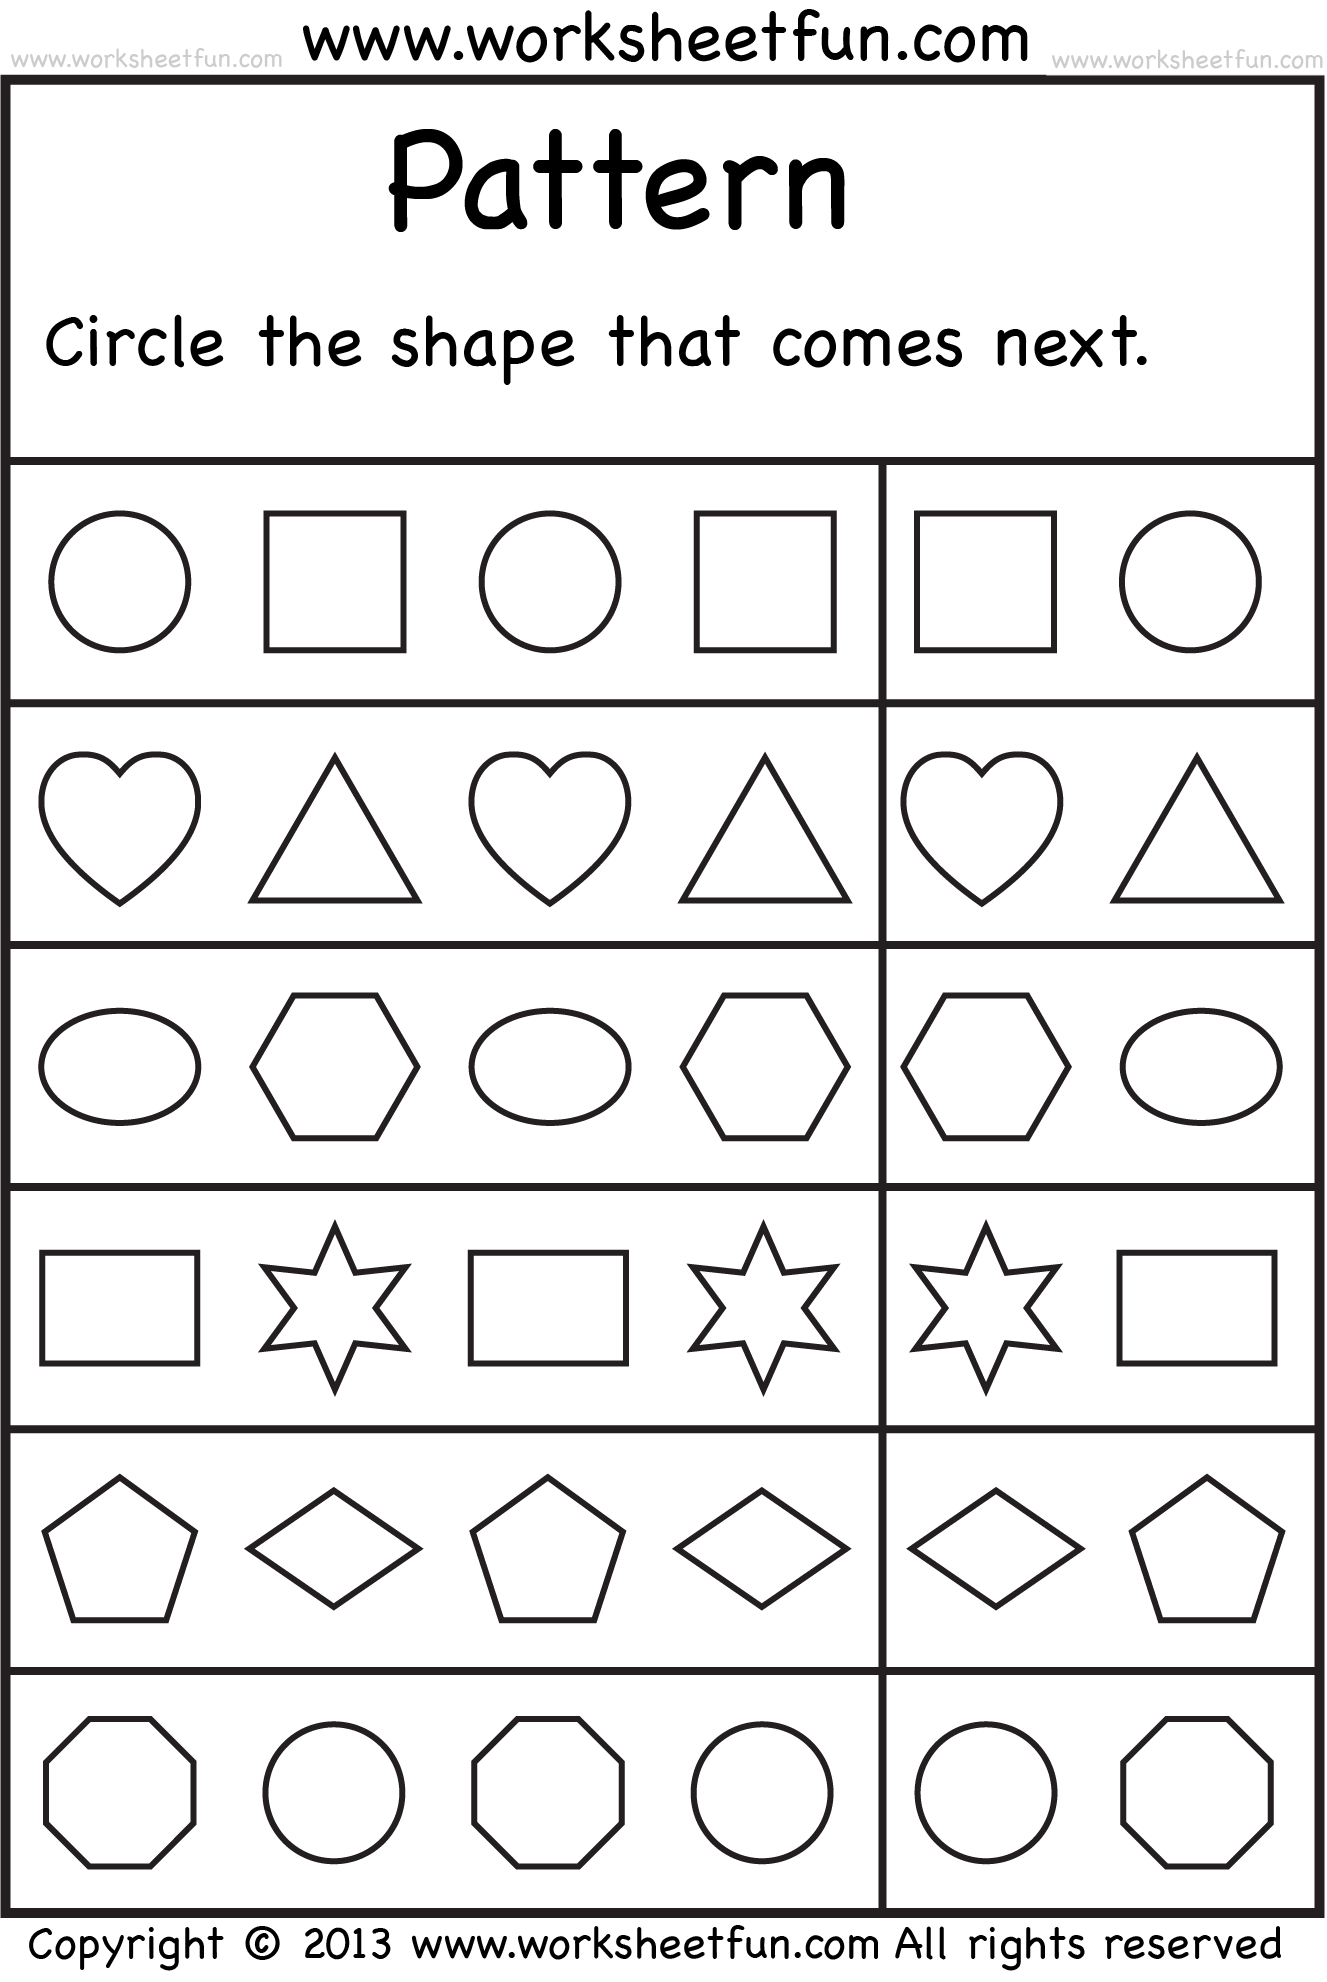 Weirdmailus  Splendid  Images About School Worksheets On Pinterest  Number Words  With Outstanding  Images About School Worksheets On Pinterest  Number Words Alphabet Worksheets And Free Printable Kindergarten Worksheets With Beautiful Commutative Property Of Addition Worksheets Also Science  Electromagnetic Spectrum Worksheet Answers In Addition Free Printable Fraction Worksheets And Photosynthesis Worksheets As Well As Ionic And Covalent Bonds Worksheet Additionally Addition Worksheets For First Grade From Pinterestcom With Weirdmailus  Outstanding  Images About School Worksheets On Pinterest  Number Words  With Beautiful  Images About School Worksheets On Pinterest  Number Words Alphabet Worksheets And Free Printable Kindergarten Worksheets And Splendid Commutative Property Of Addition Worksheets Also Science  Electromagnetic Spectrum Worksheet Answers In Addition Free Printable Fraction Worksheets From Pinterestcom